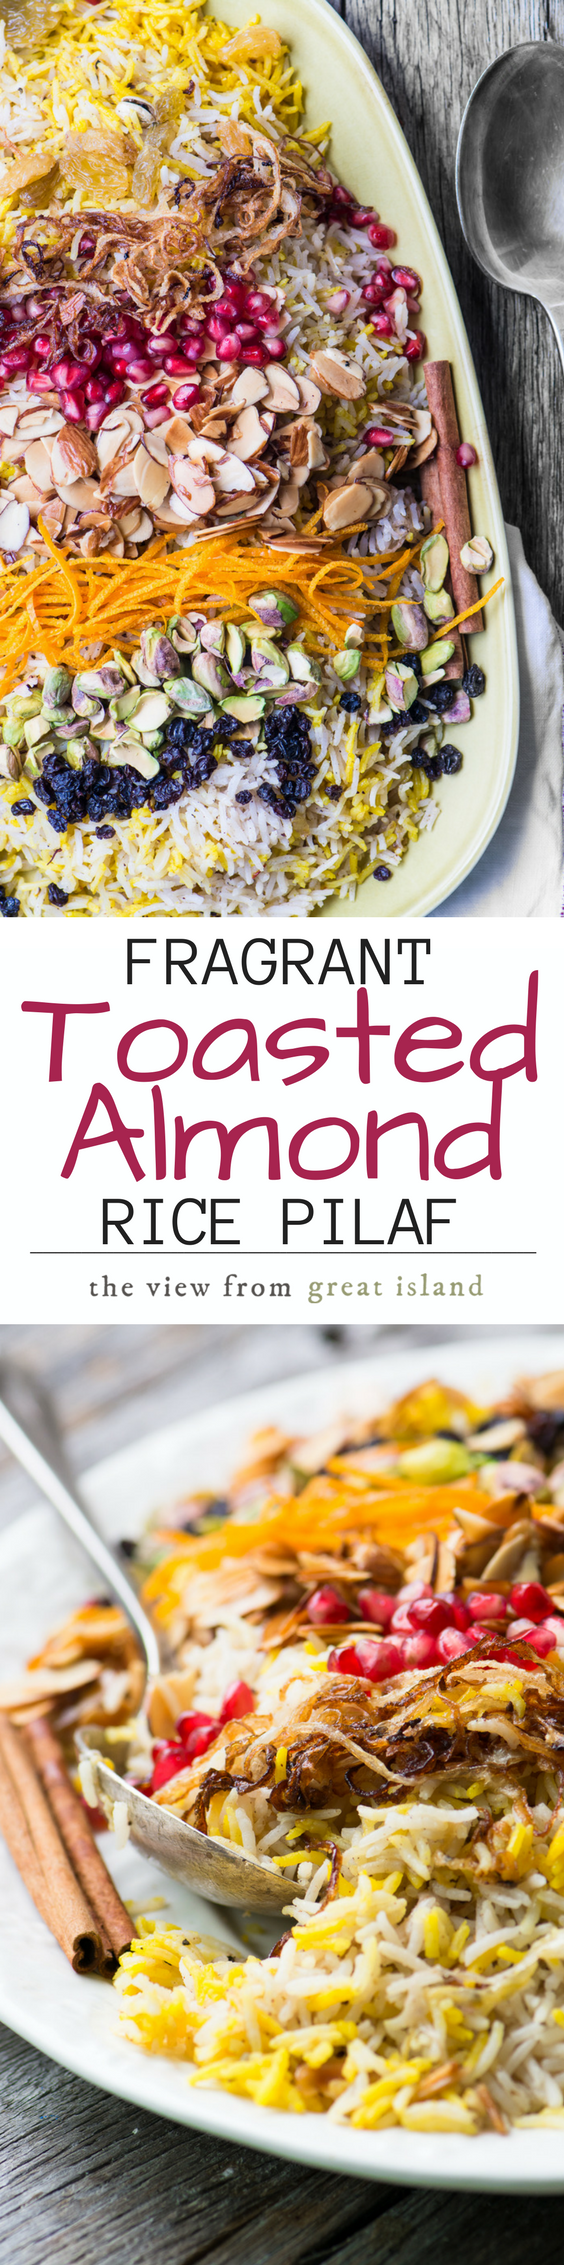 My Fragrant Toasted Almond Rice Pilaf is meant for joyful gatherings ~ this pretty gluten free vegan dish will thrill everybody around your table! #Persian #pilaf #rice #sidedish #vegansidedish #vegetarian #Thanksgiving #Christmas #holidays #Grains #glutenfreesidedish #healthy #persianrecipe #turkishrecipe #Indianrecipe